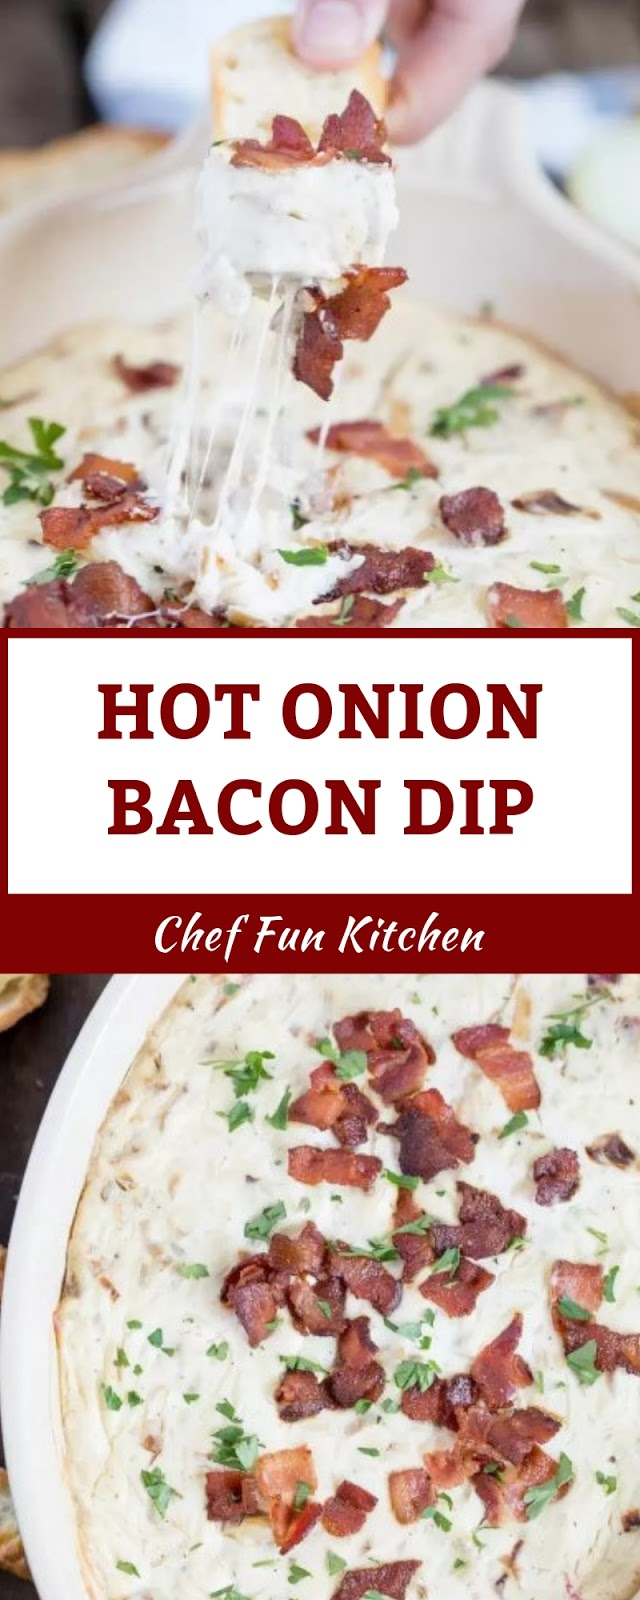 HOT ONION BACON DIP